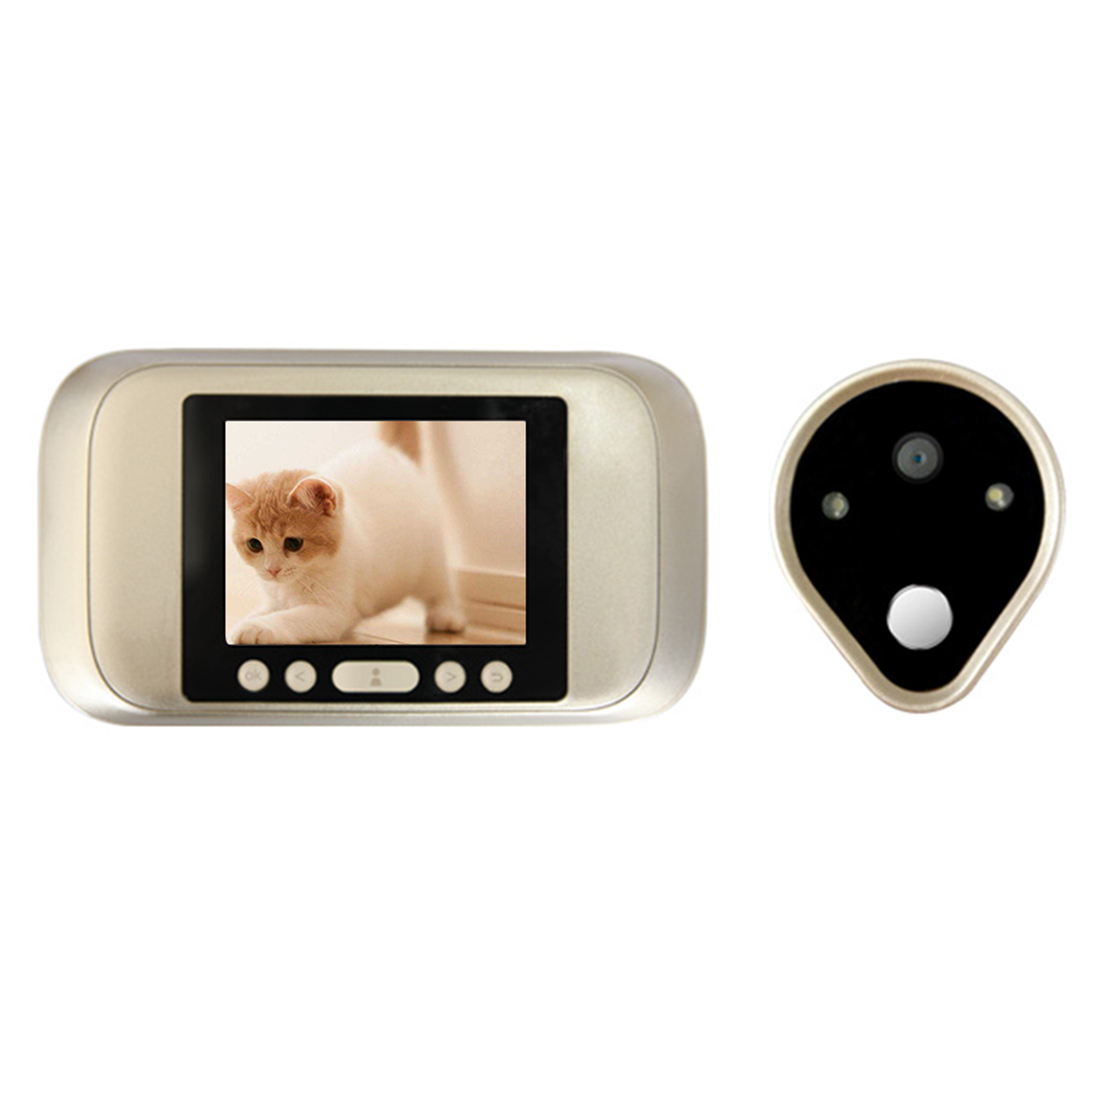 A32D 3.2 Inch Color Screen With Door Bell LED Lights Electronic Doorbell Door Viewer Home Security Peephole Door Camera x5 home smart doorbell security door peephole camera electronic cat eye and hd pixels tft color screen display audio door bell